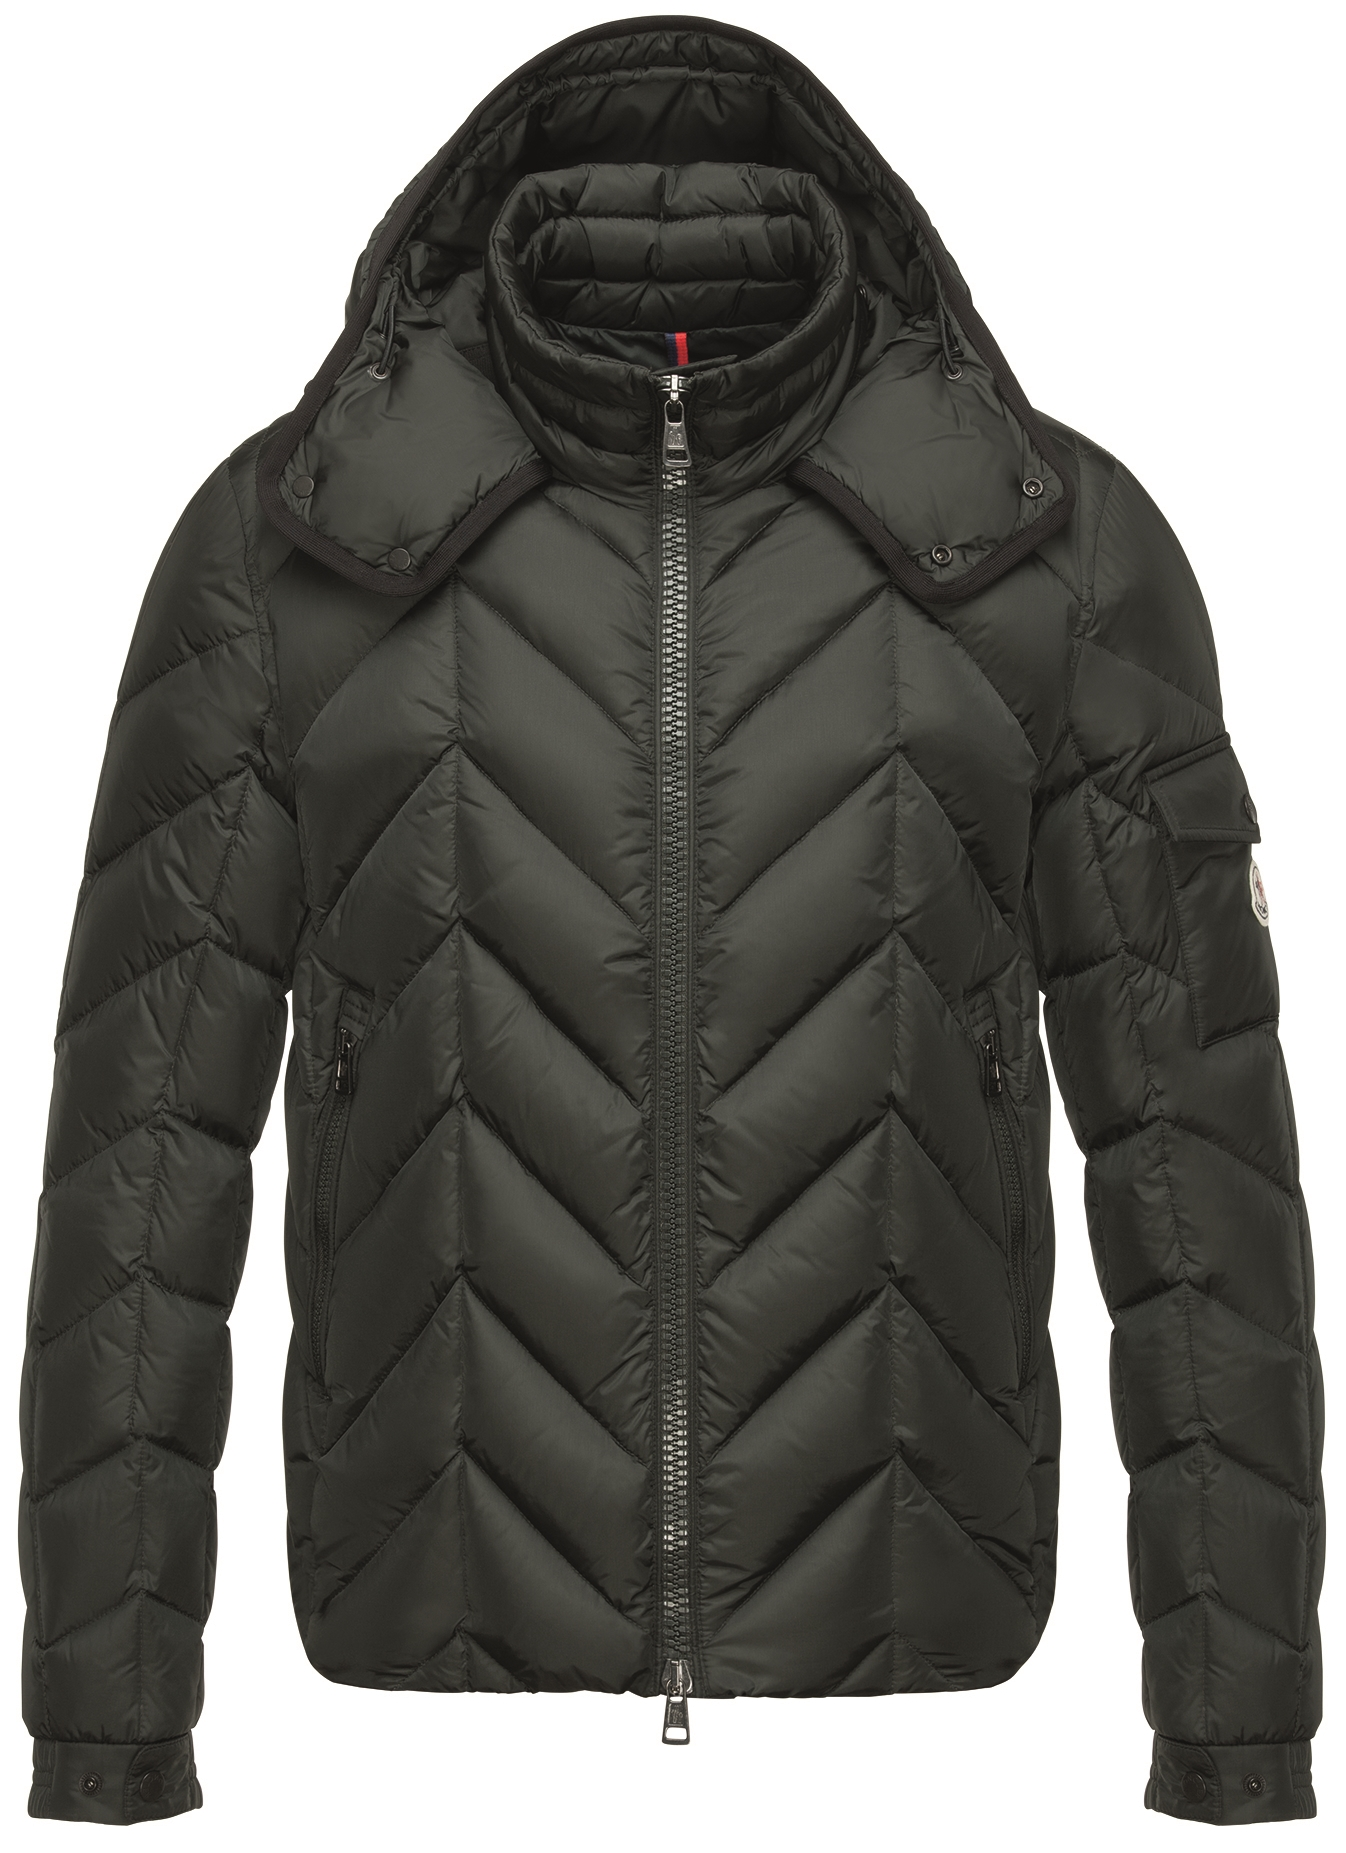 Moncler Berriat Padded Jacket, $1,435